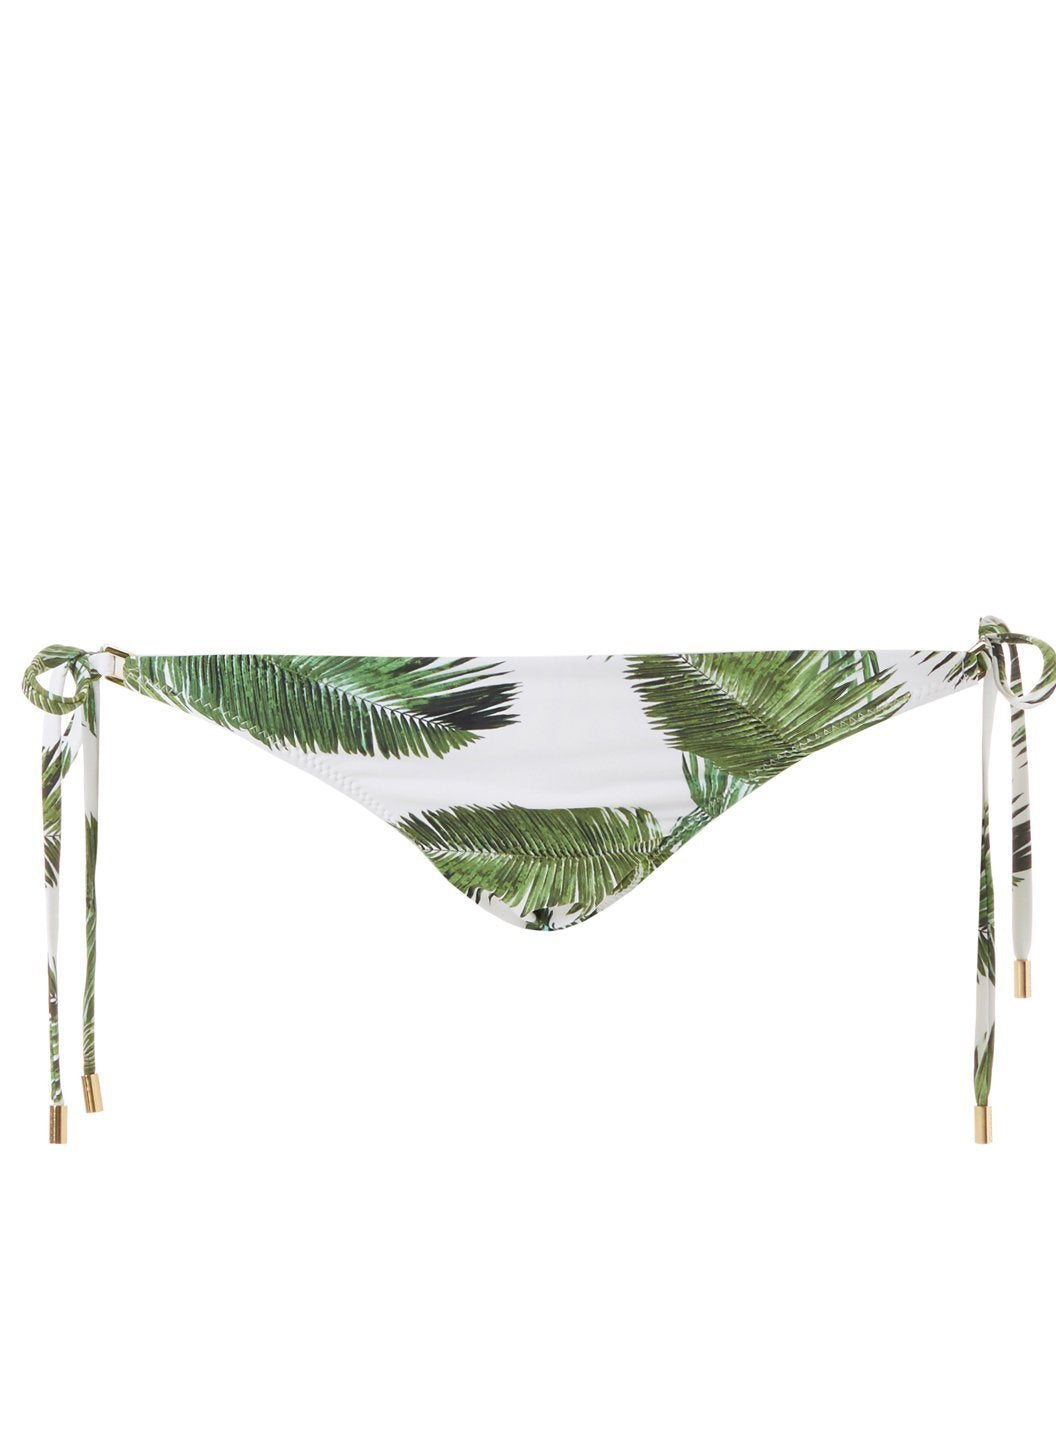 cancun-white-palm-bikini-bottom - Cut-Out